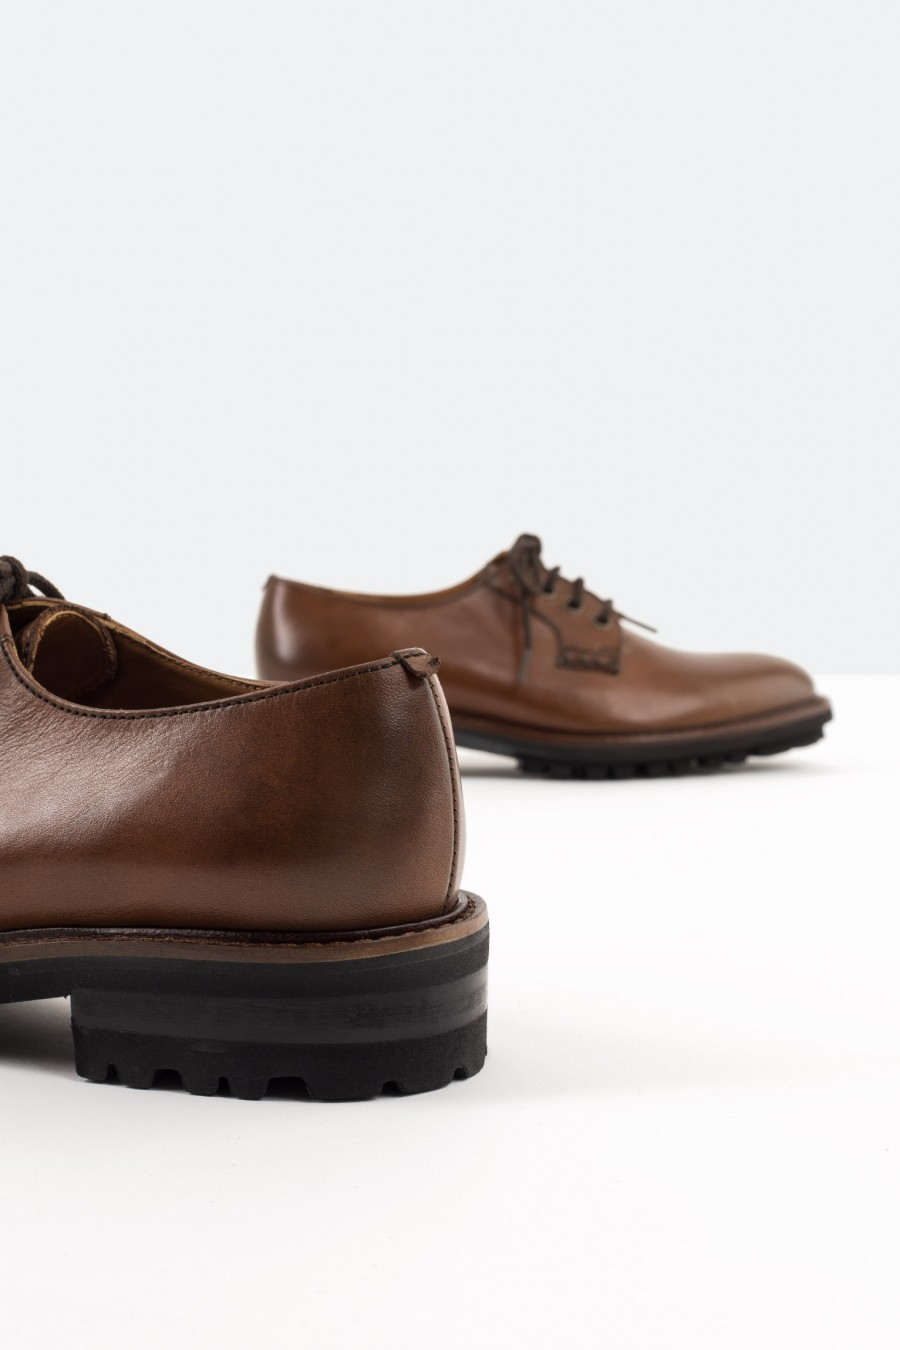 Tobacco brown leather derby shoes